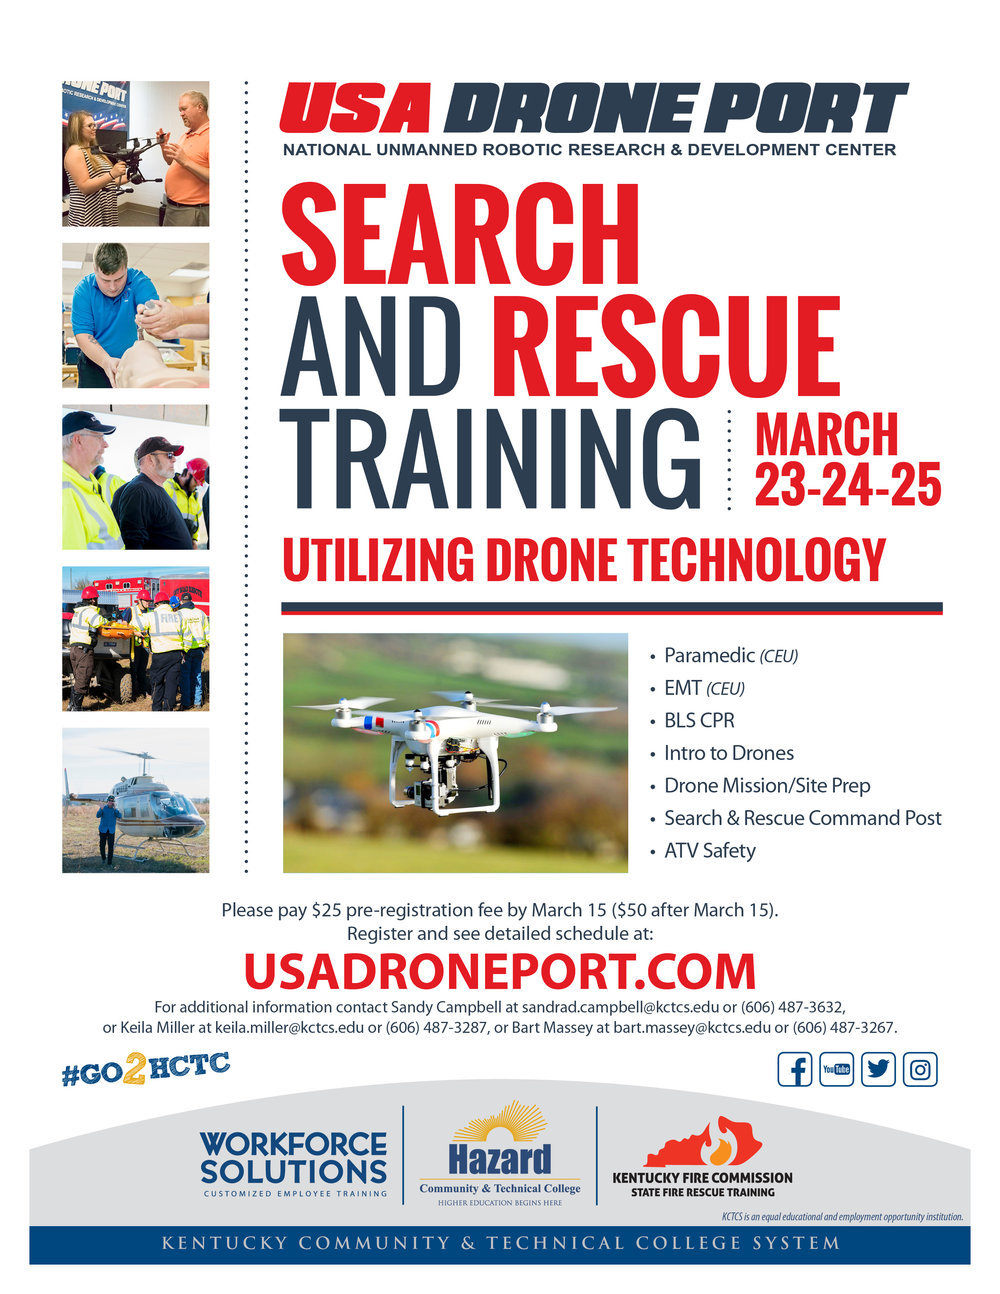 Search_and_Rescue_Training_monitors.jpg